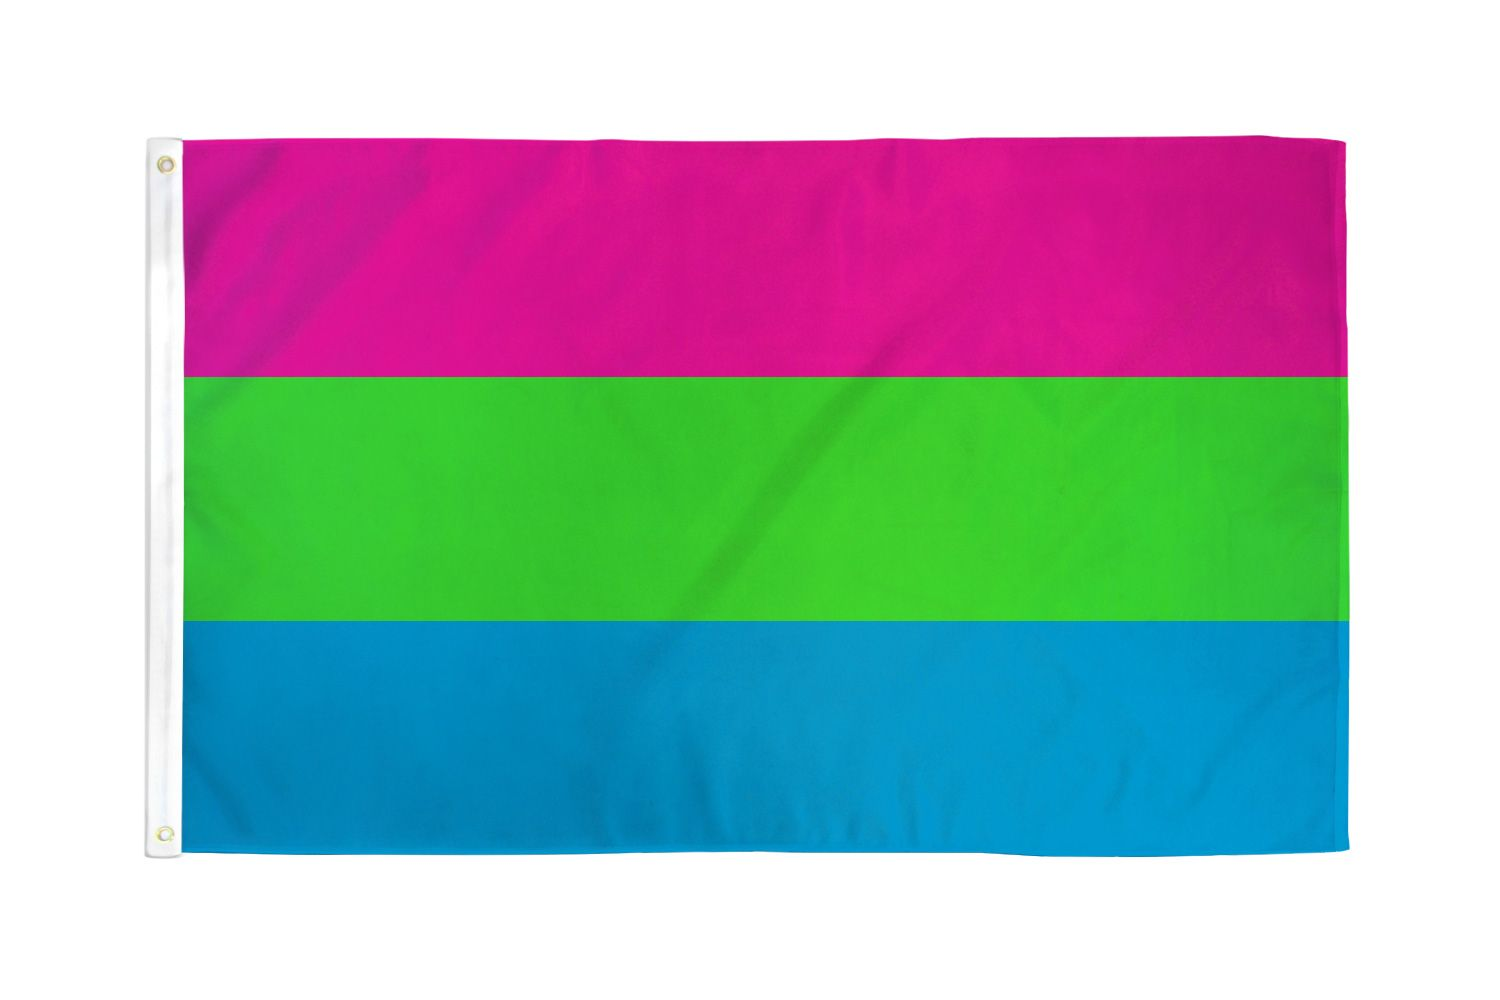 Polysexual Pride Flag 3 x 5 ft